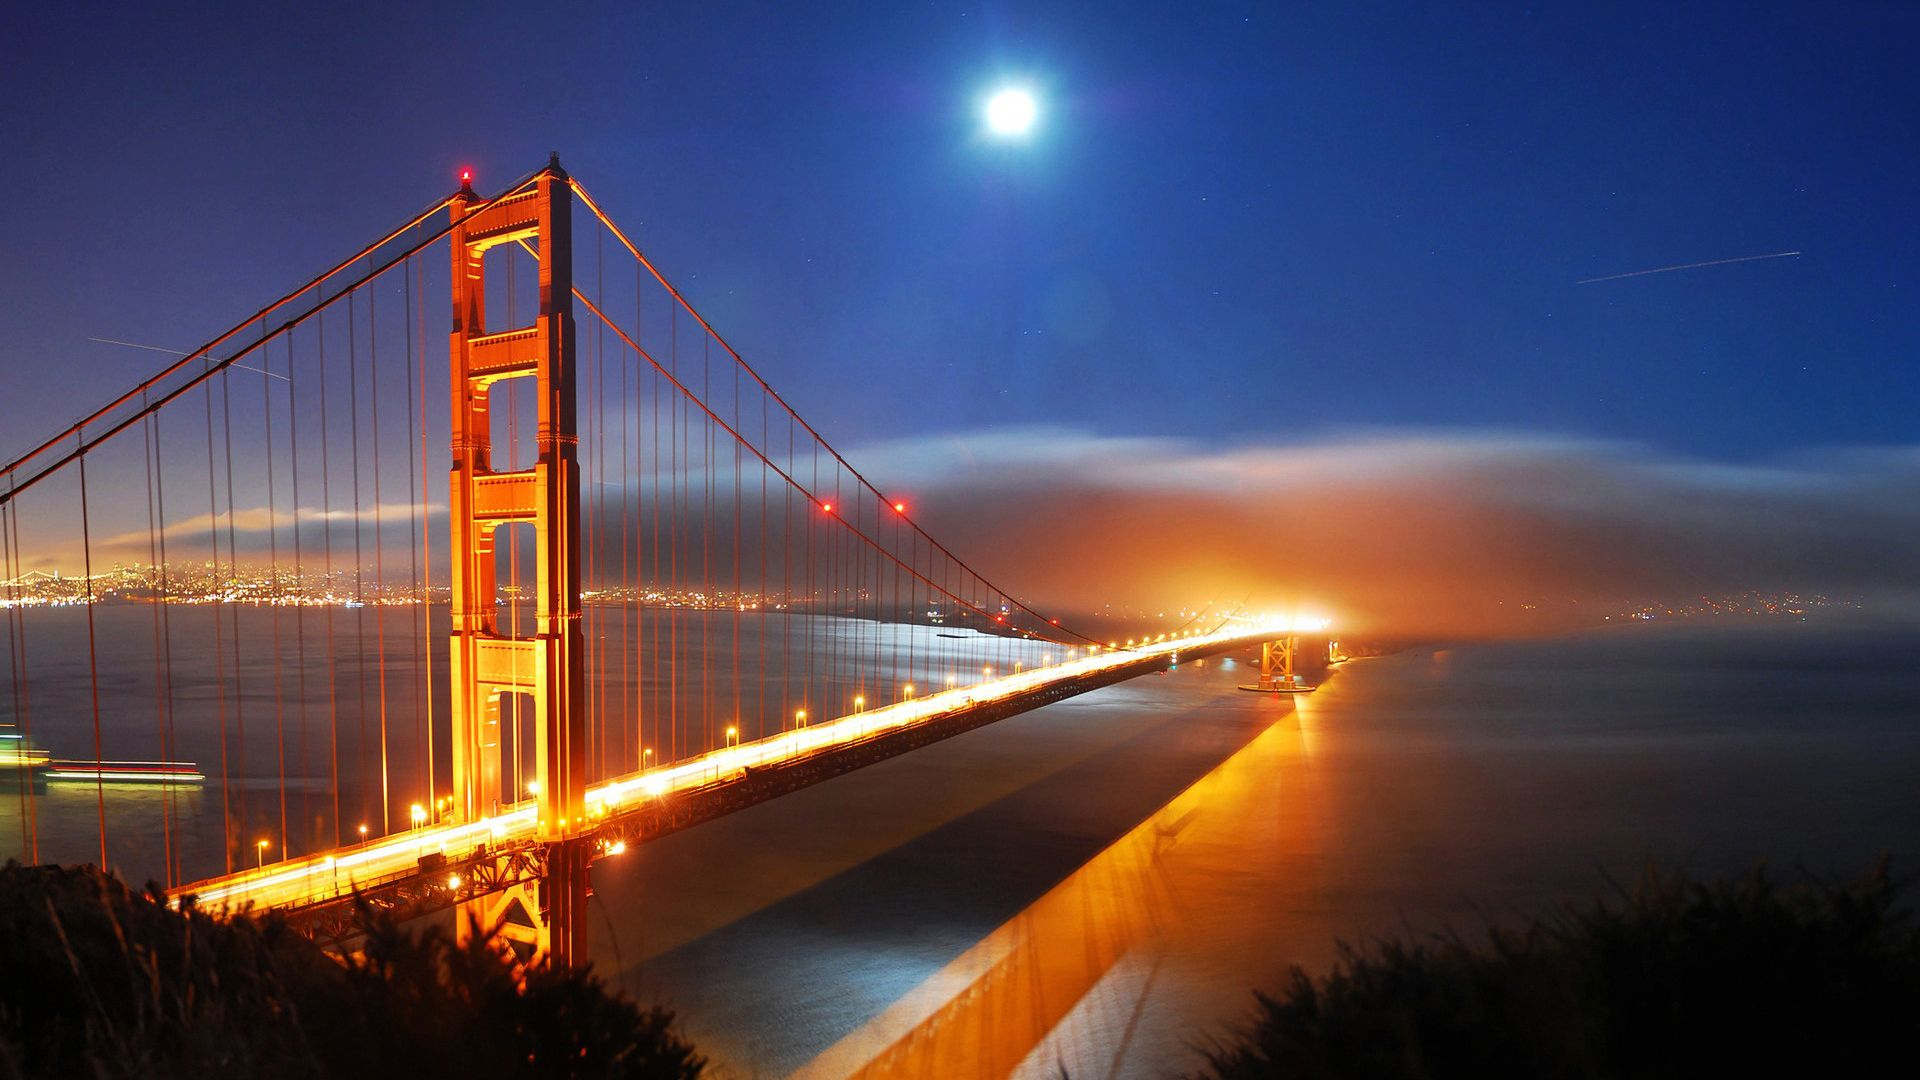 Beautiful 3 3 San Francisco Bridge California Wallpaper Golden Gate Bridge